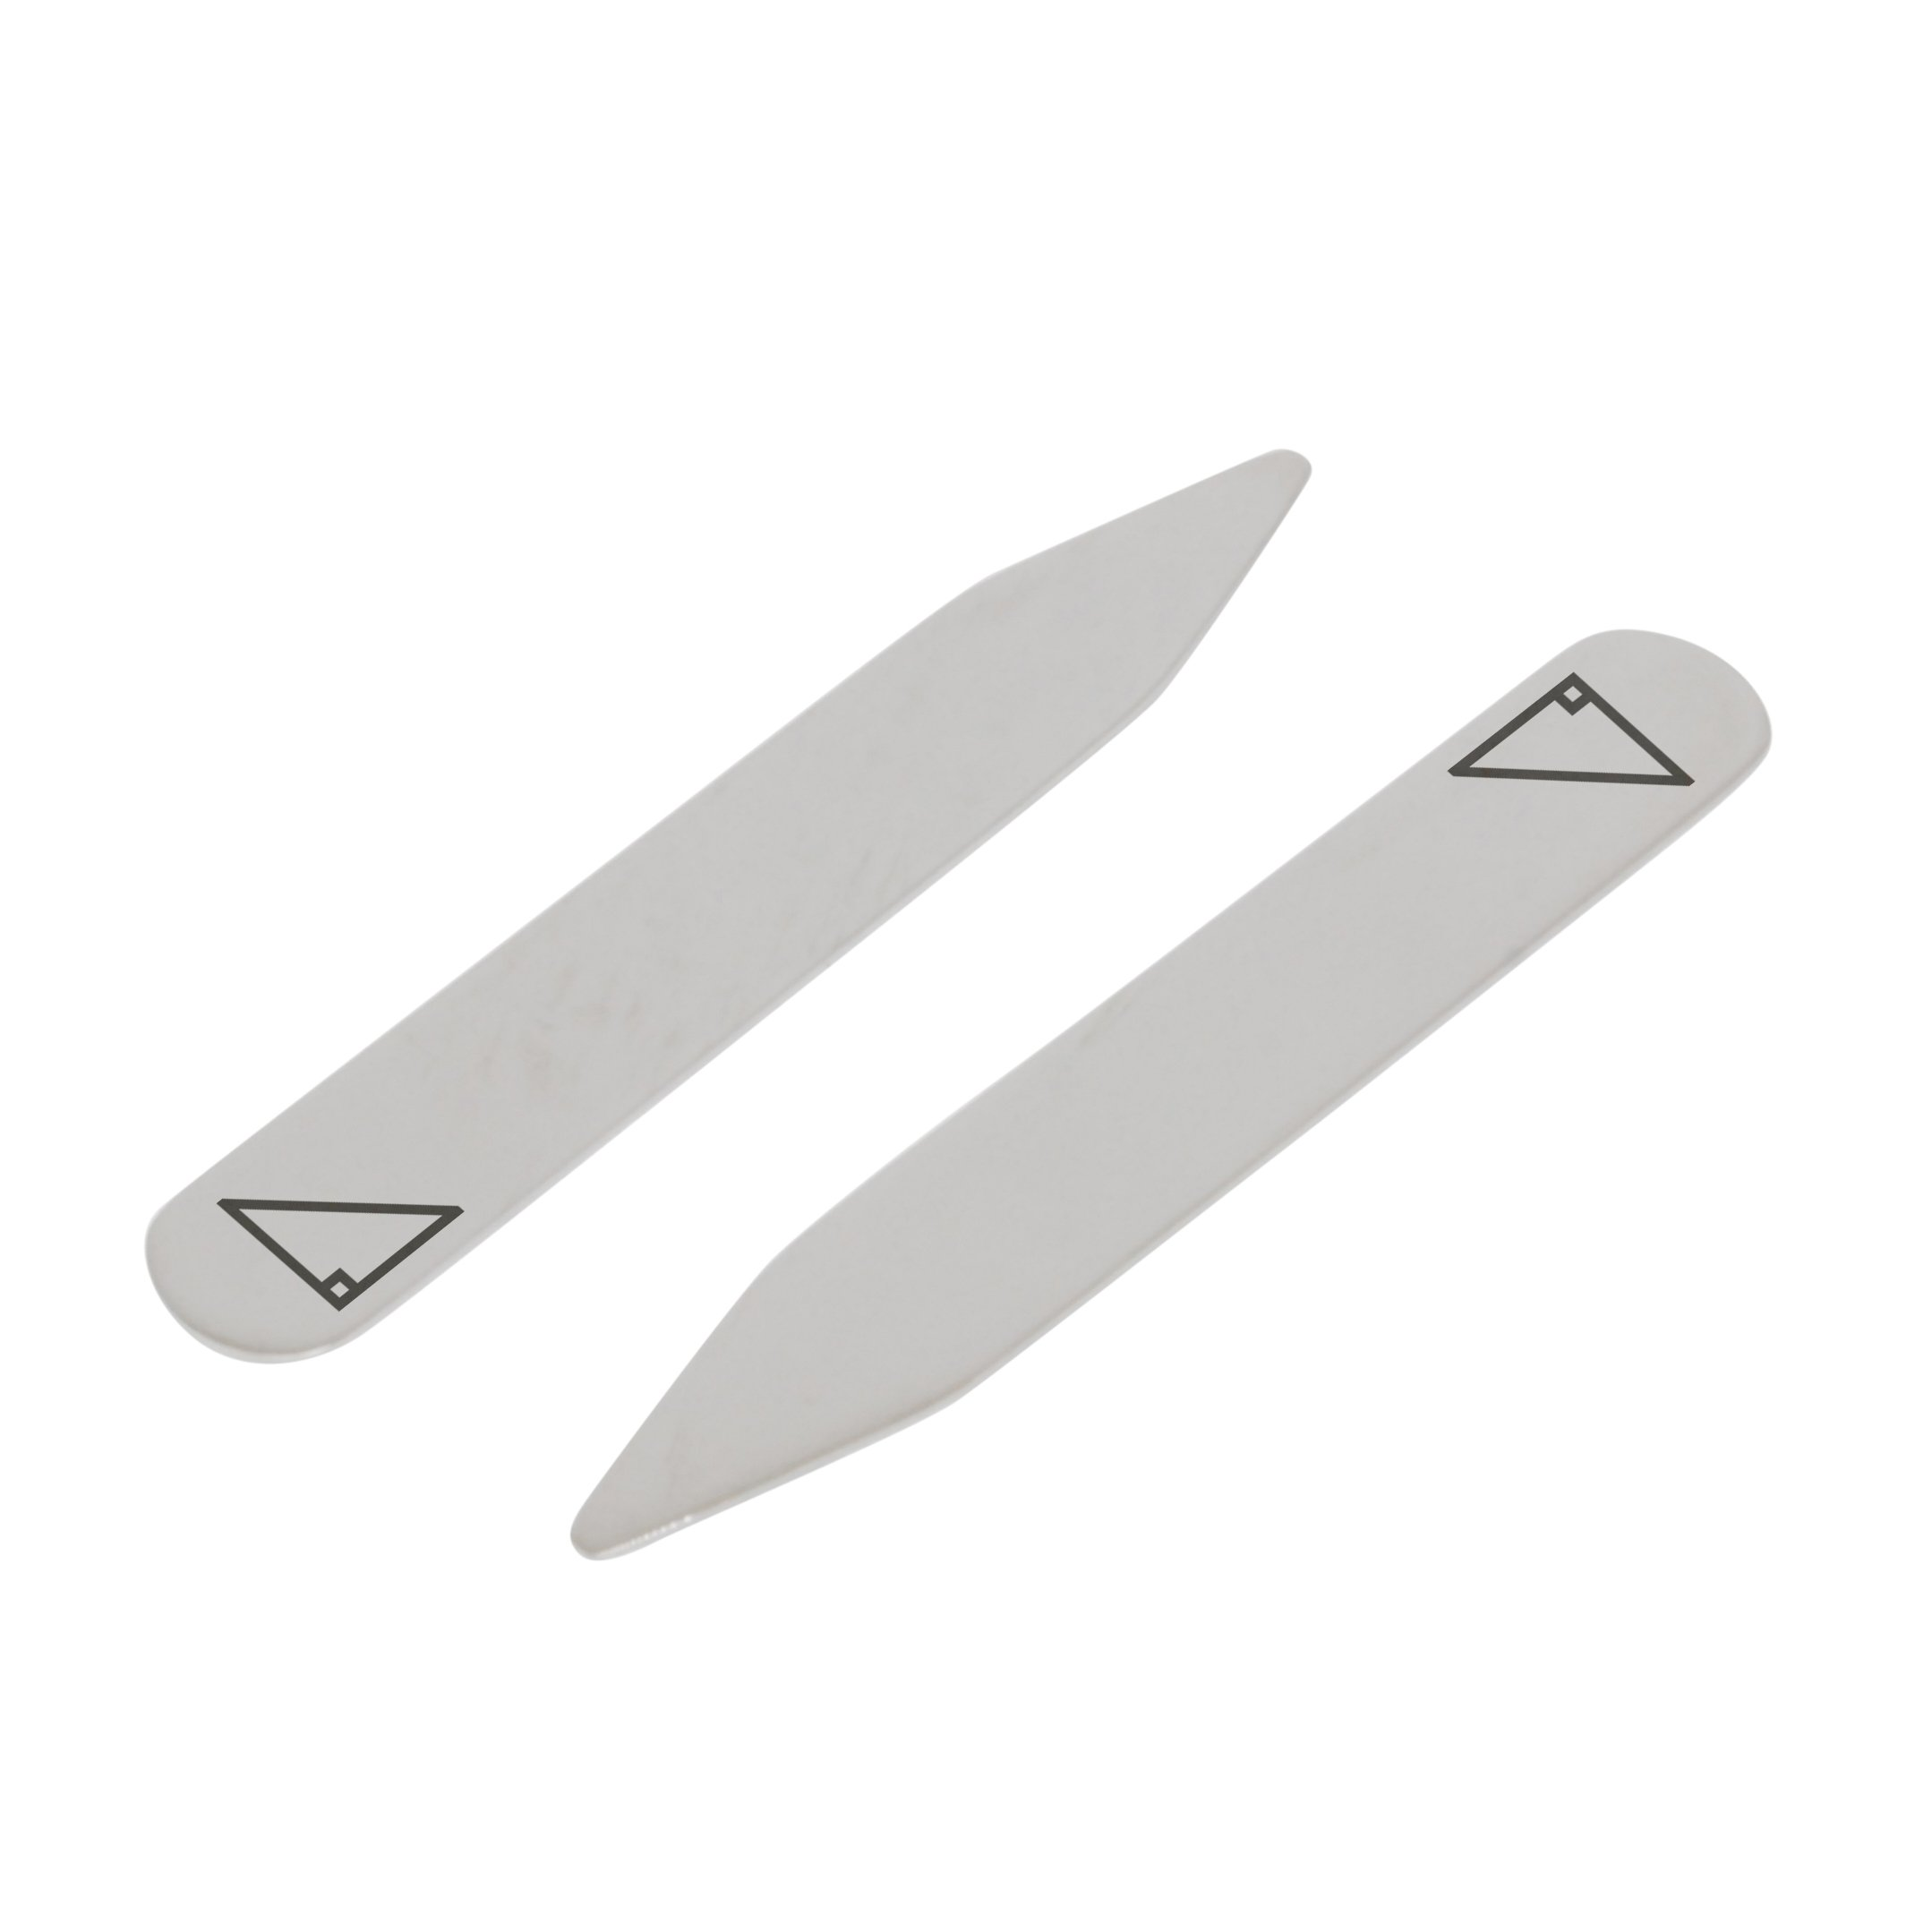 MODERN GOODS SHOP Stainless Steel Collar Stays With Laser Engraved Right Triangle Design - 2.5 Inch Metal Collar Stiffeners - Made In USA by Modern Accessories Co (Image #1)